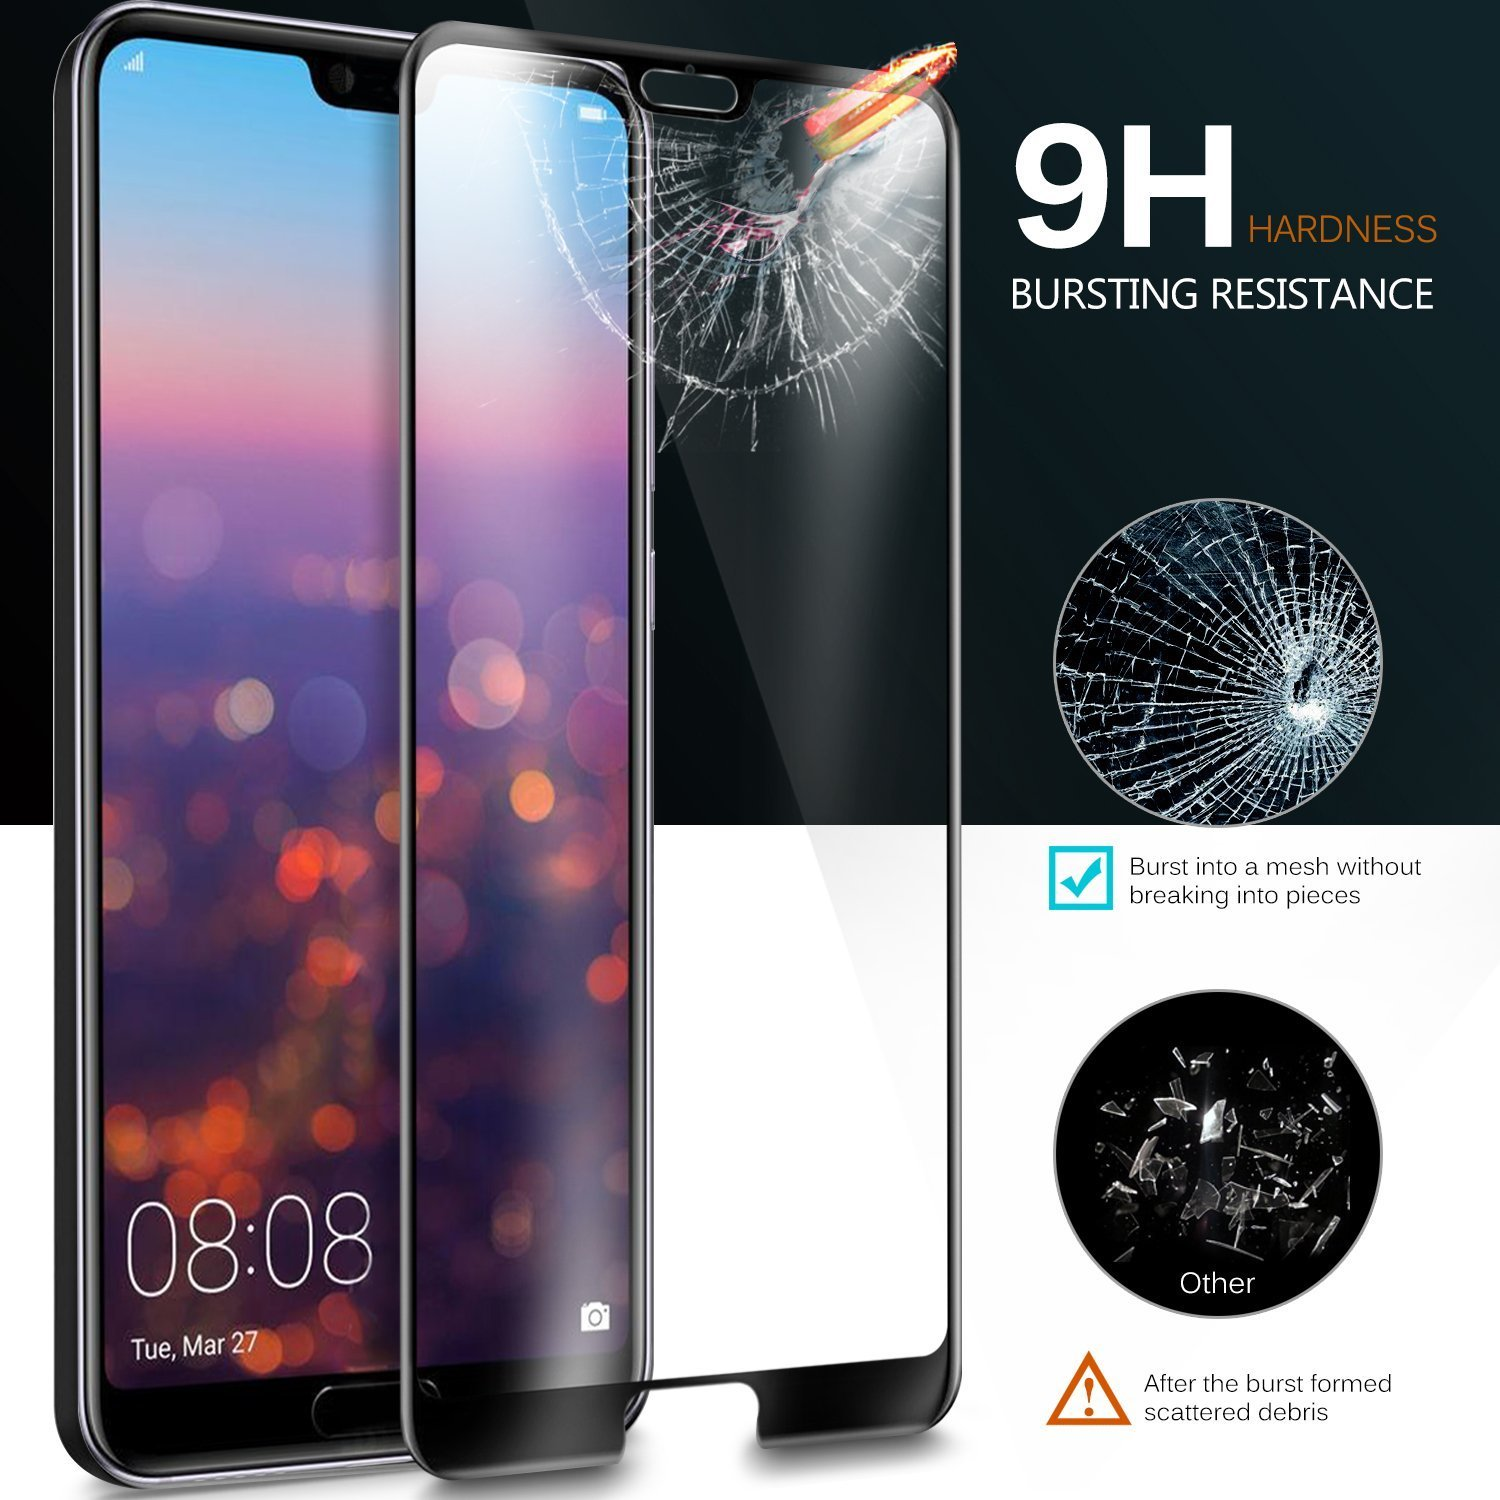 Huawei p20 pro remove demo mode 9 6 6  Oct 21, · how i can